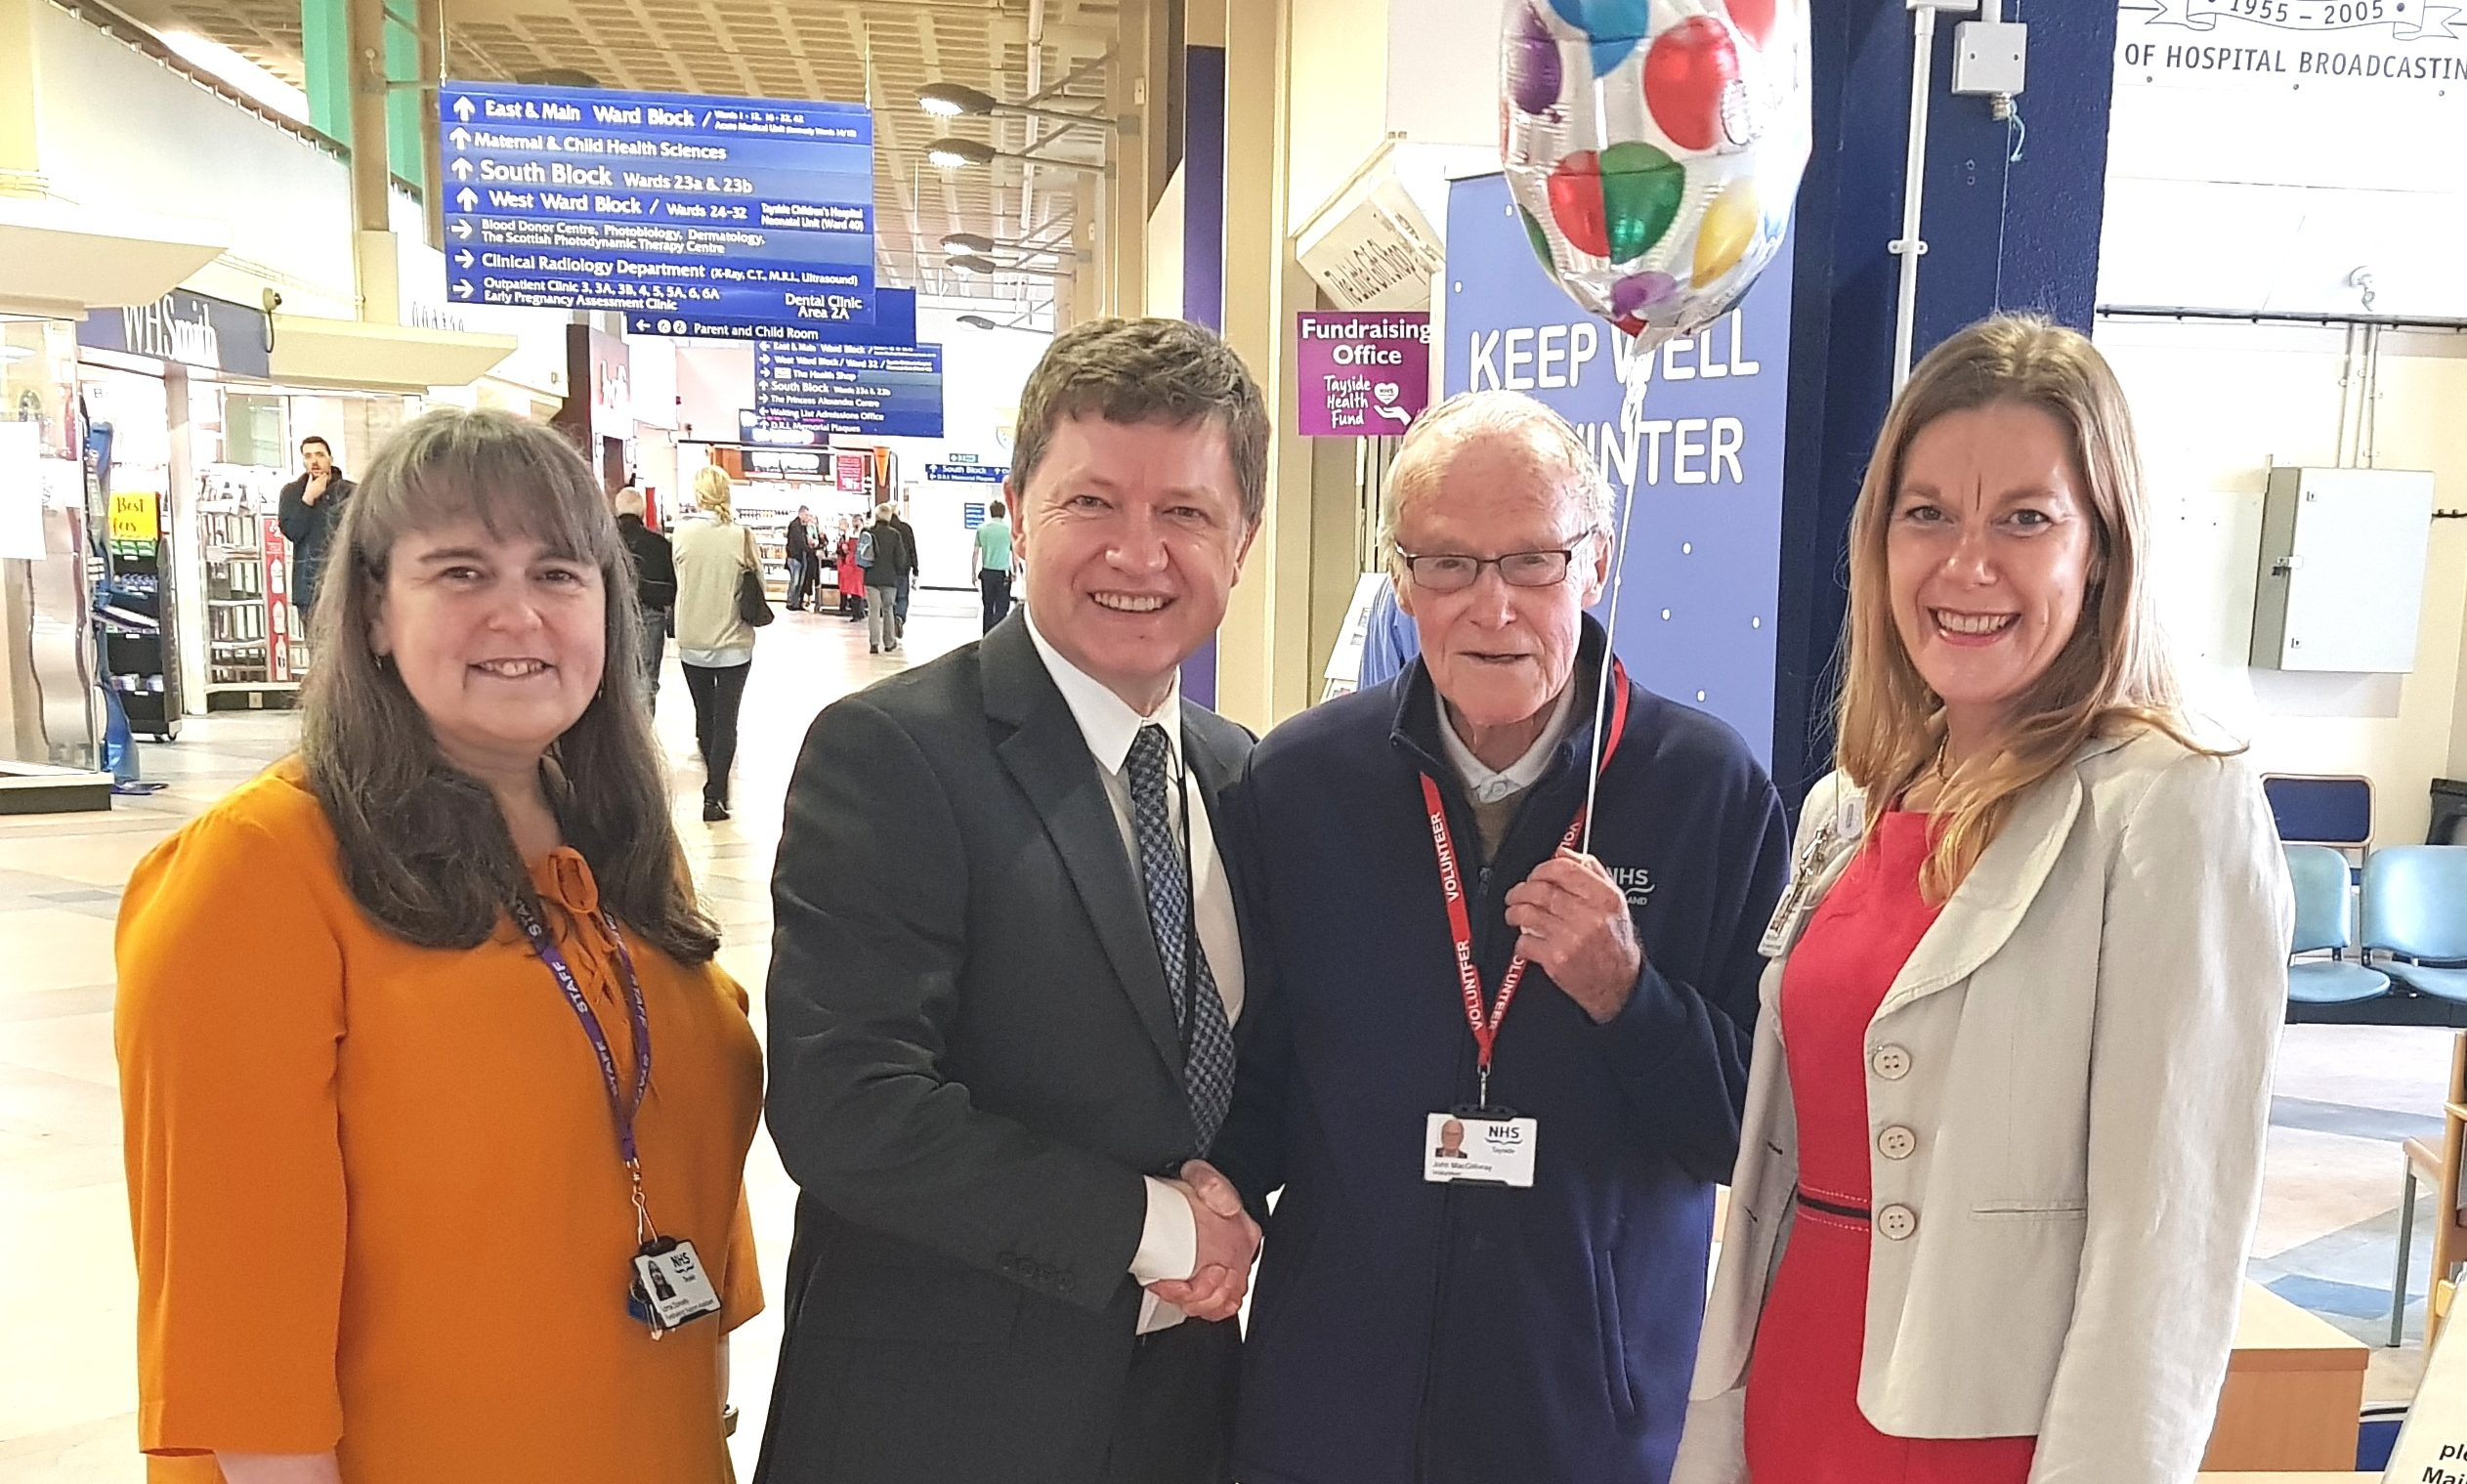 John MacGillivray is congratulated by fundraising support officer Lorna Donnelly, chief executive Grant Archibald and clinical governance and risk management team leader Tracey Passway.